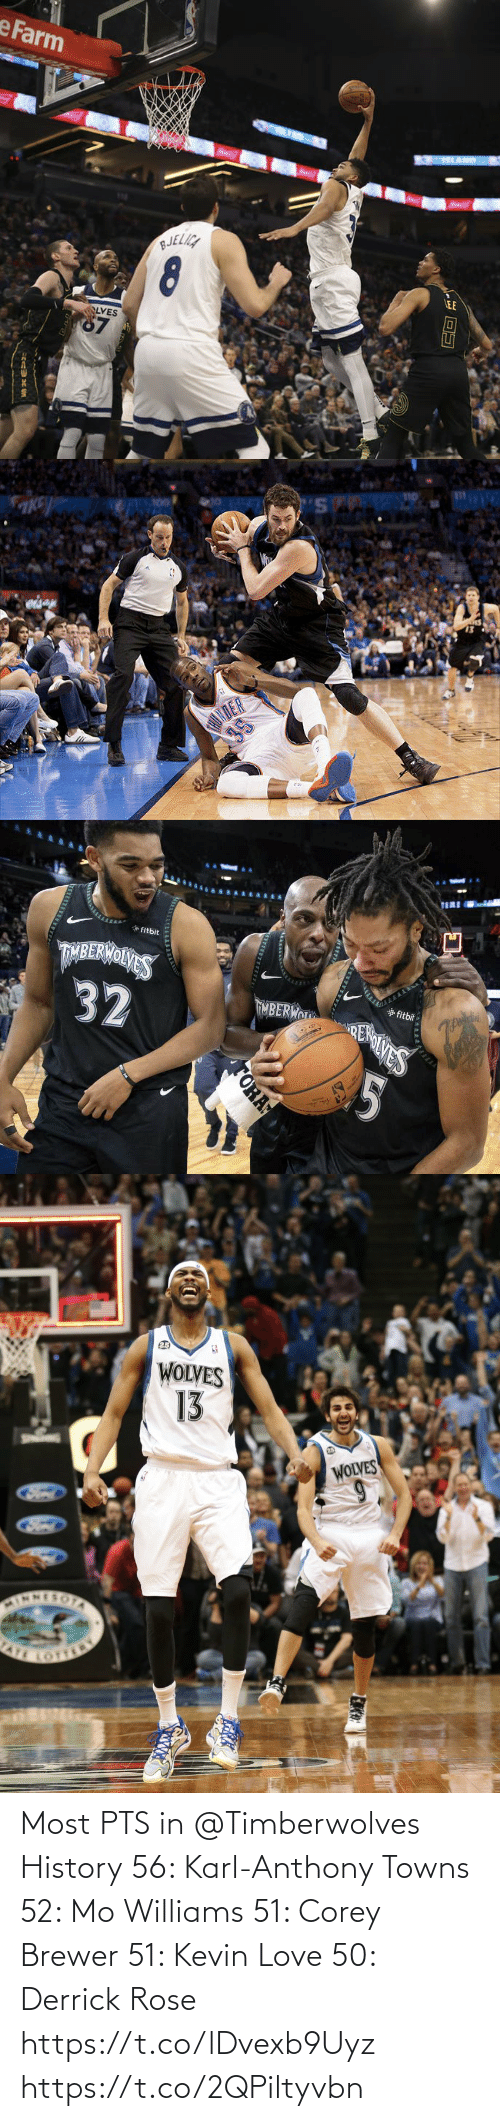 Karl-Anthony Towns: Most PTS in @Timberwolves History  56: Karl-Anthony Towns 52: Mo Williams 51: Corey Brewer 51: Kevin Love 50: Derrick Rose https://t.co/lDvexb9Uyz https://t.co/2QPiltyvbn